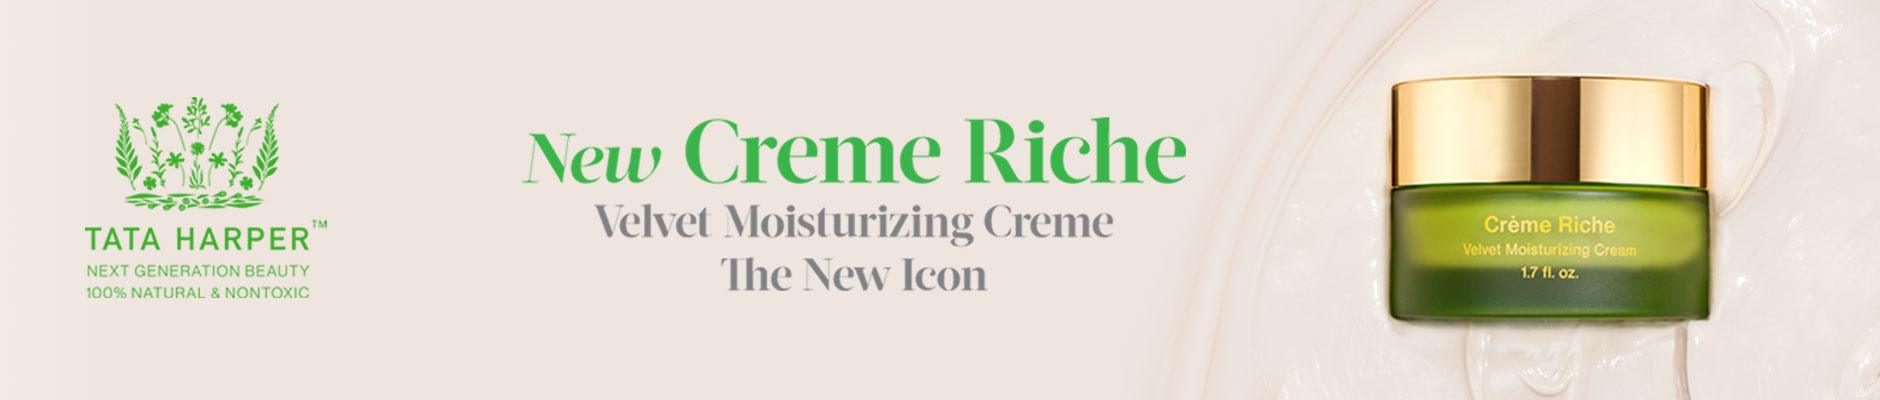 New Creme Riche: Velvet Moisturizing Creme - The New Icon